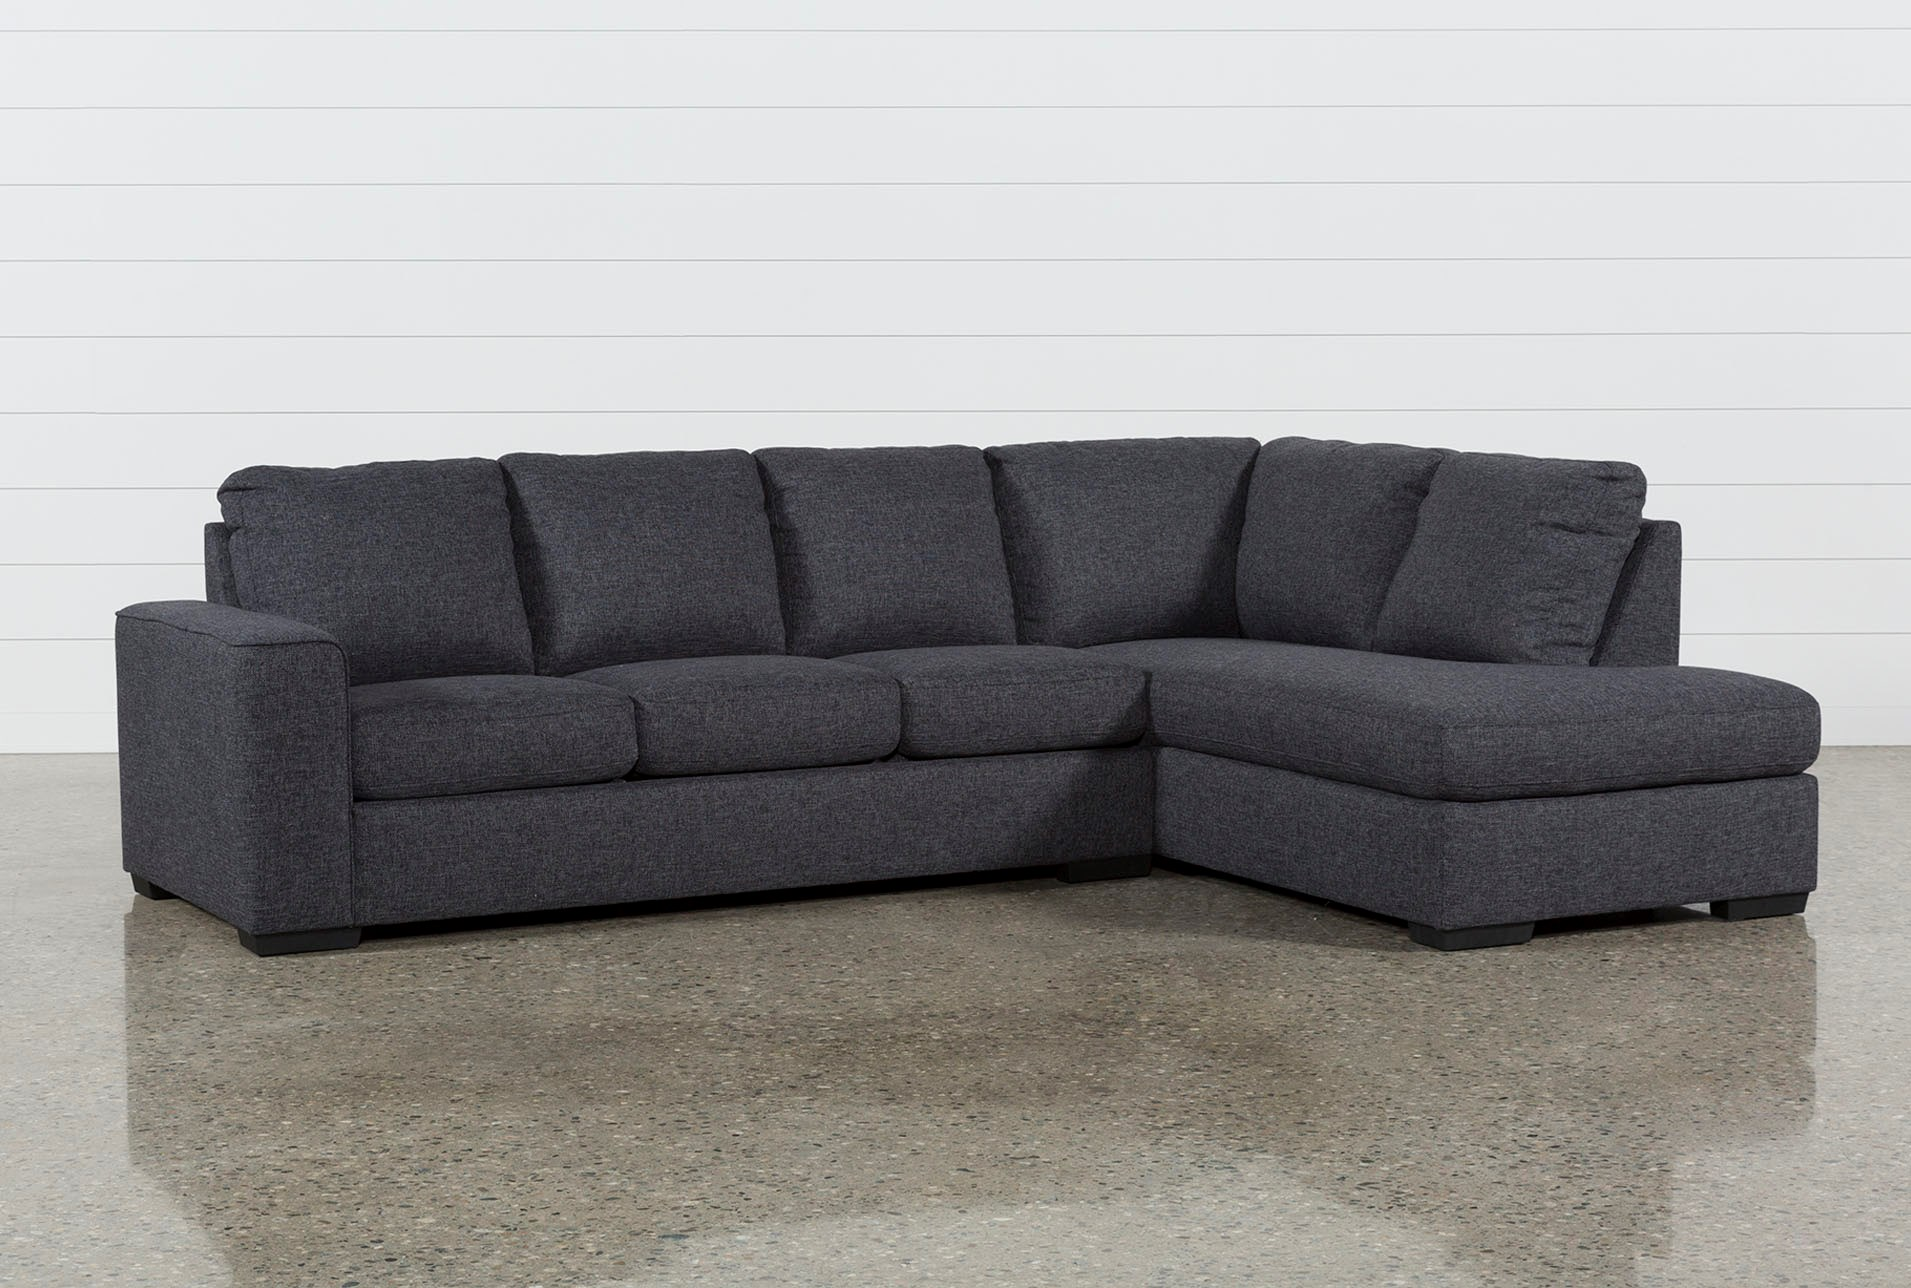 with leather grey furniture large chaise accent sofa chairs sofas couch longue attachment showing sectional sleeper of photos within